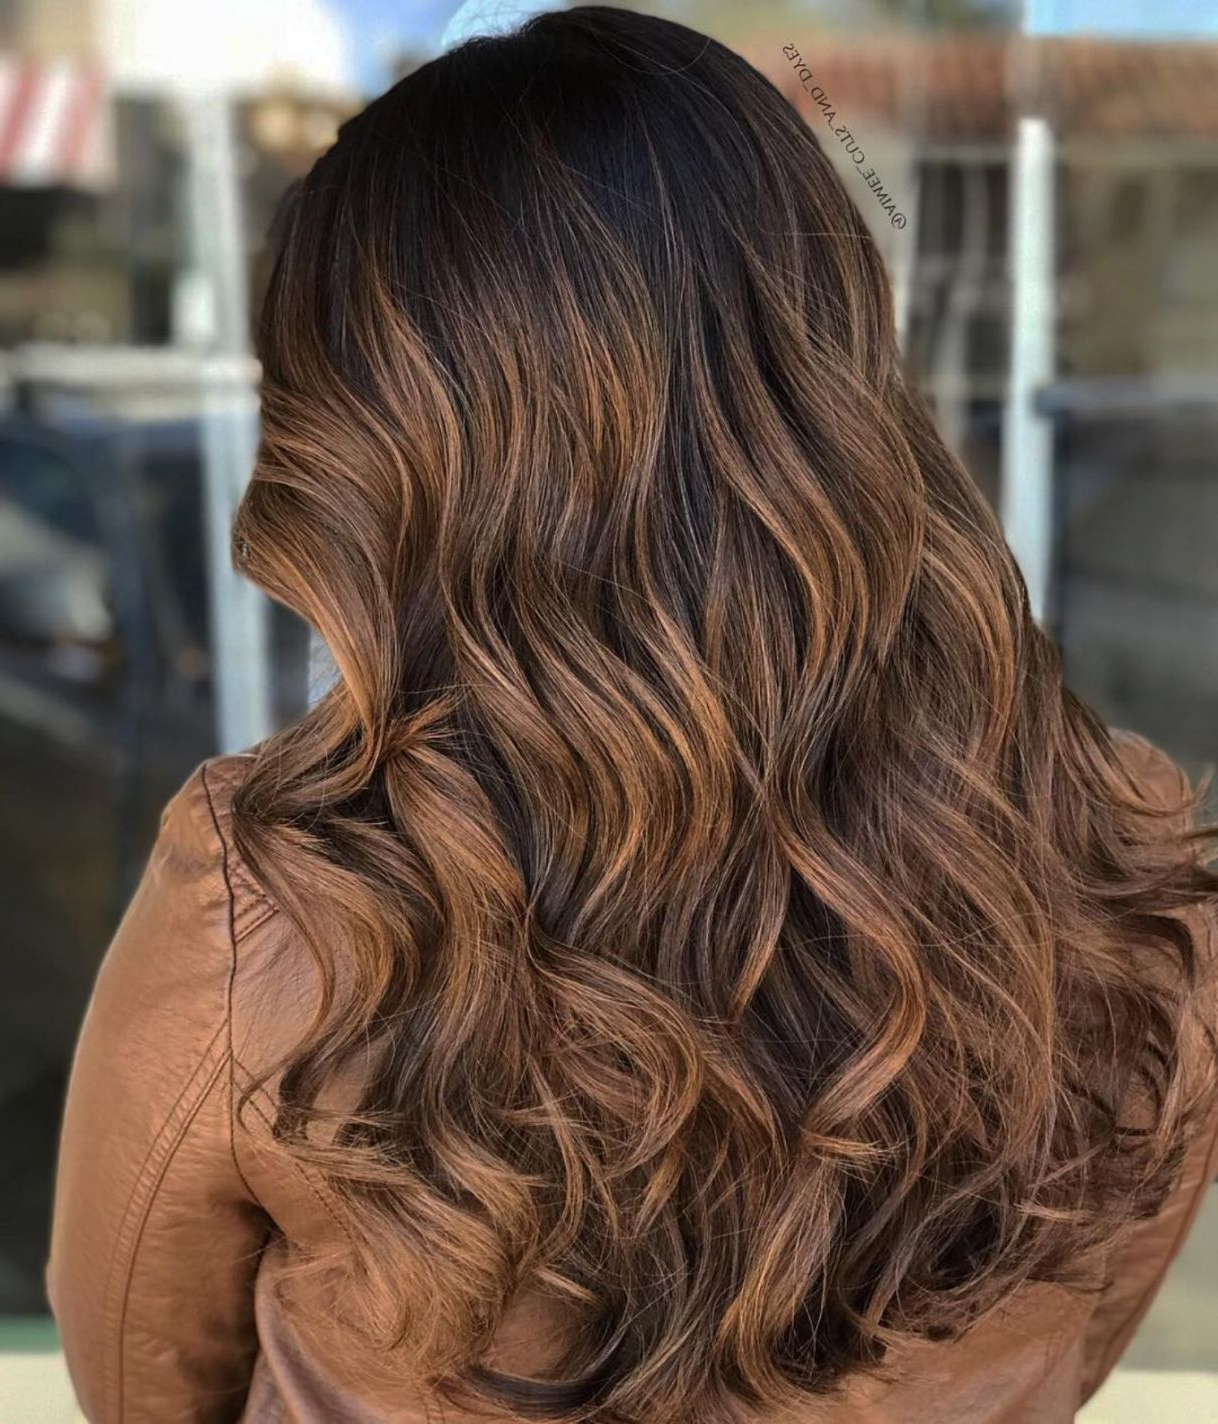 2020 Tiny Twist Hairstyles With Caramel Highlights Inside 60 Looks With Caramel Highlights On Brown And Dark Brown (View 3 of 20)